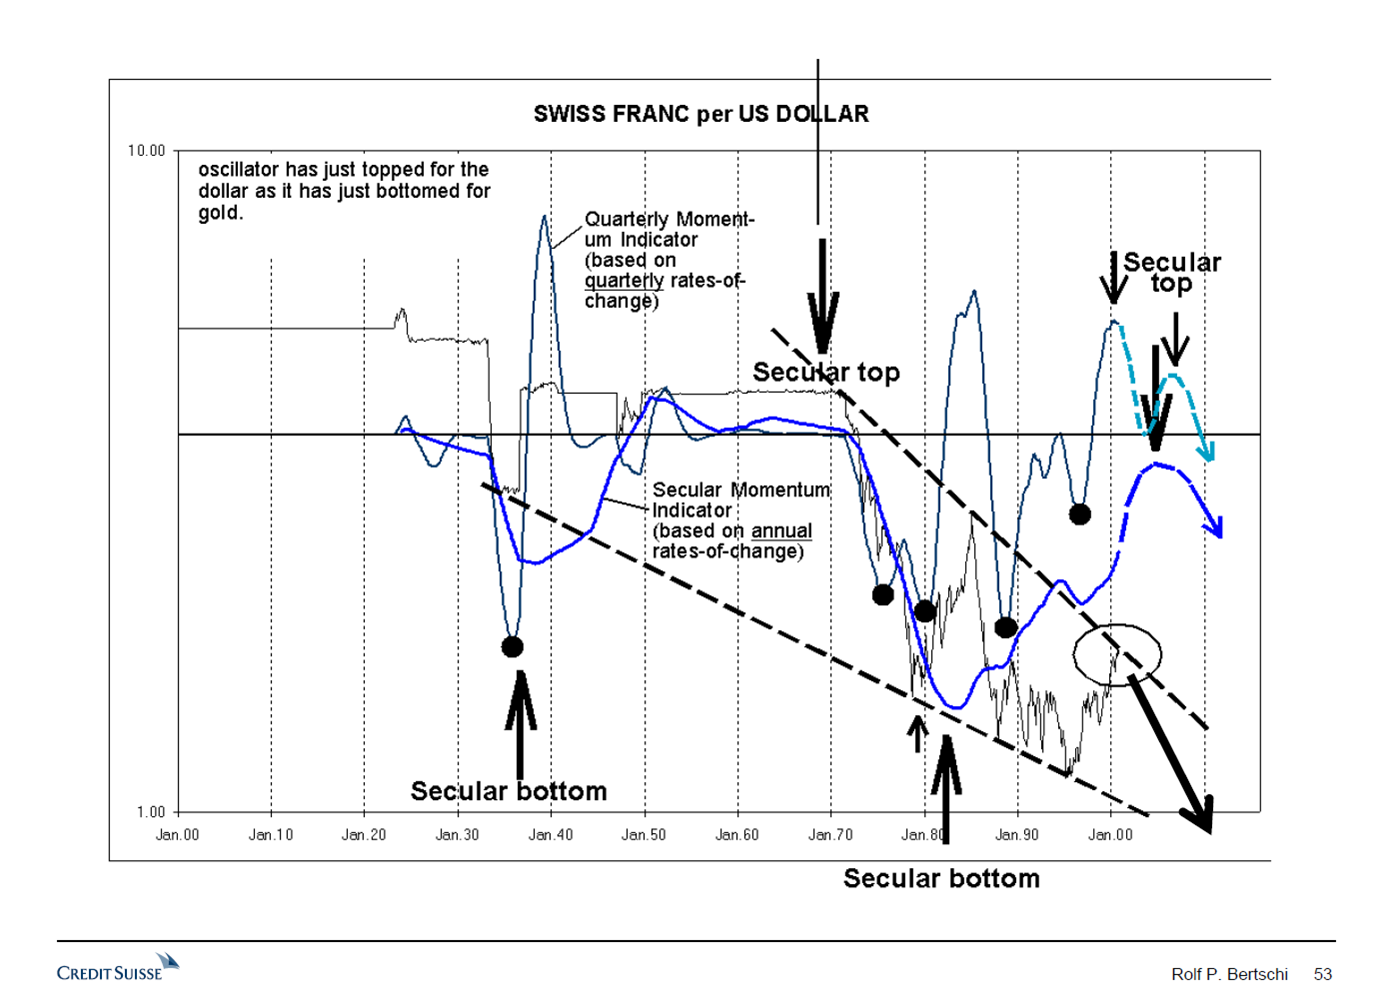 In 2001 I published my Long-term Chart Outlook for US Dollar /Swiss franc, trading at that time at 1.72.I did forcast that the US Dollar would decline over the coming decade to below parity and possibly to the lower end of the dashed downtrend line at around 80 Rappen. Following this forecast, over the years from 2001 to 2011 USD/CHF declined to 70 Rappen on 9th August 2011.